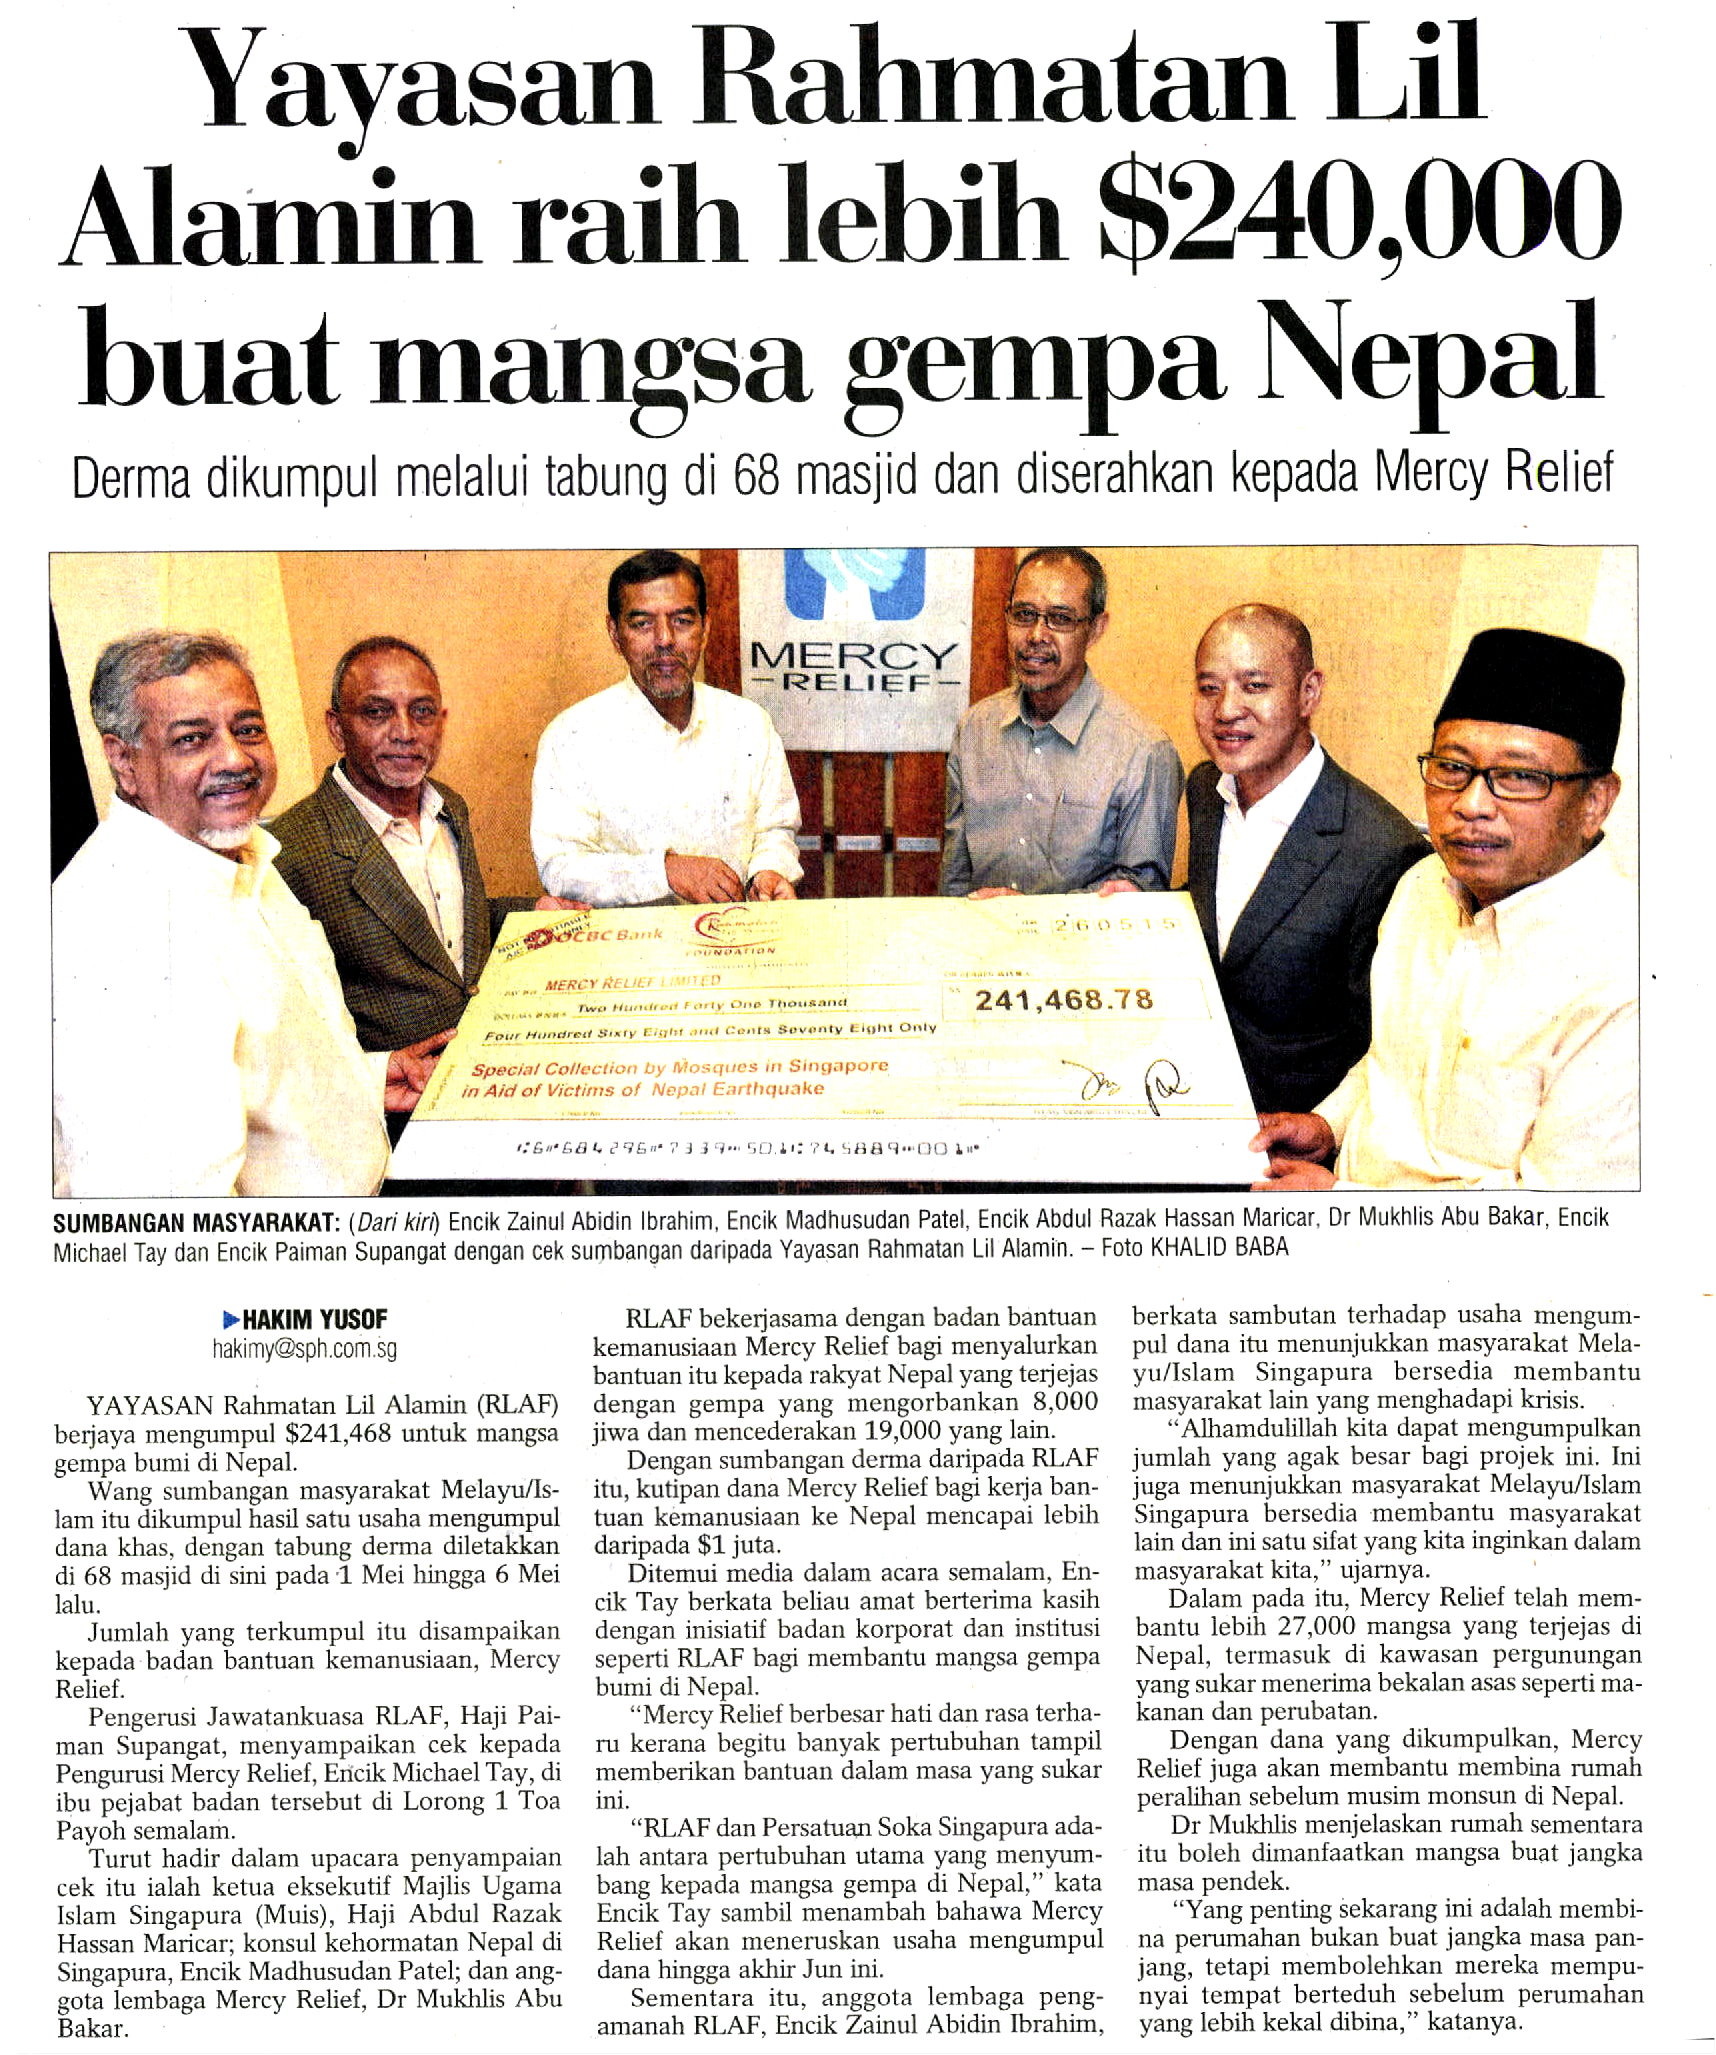 20150527_N65_BHS_SA_4_FC_YAYASAN RAHMATAN LIL ALAMIN RAISES MORE THAN 240000 TO HELP THE VICTIM